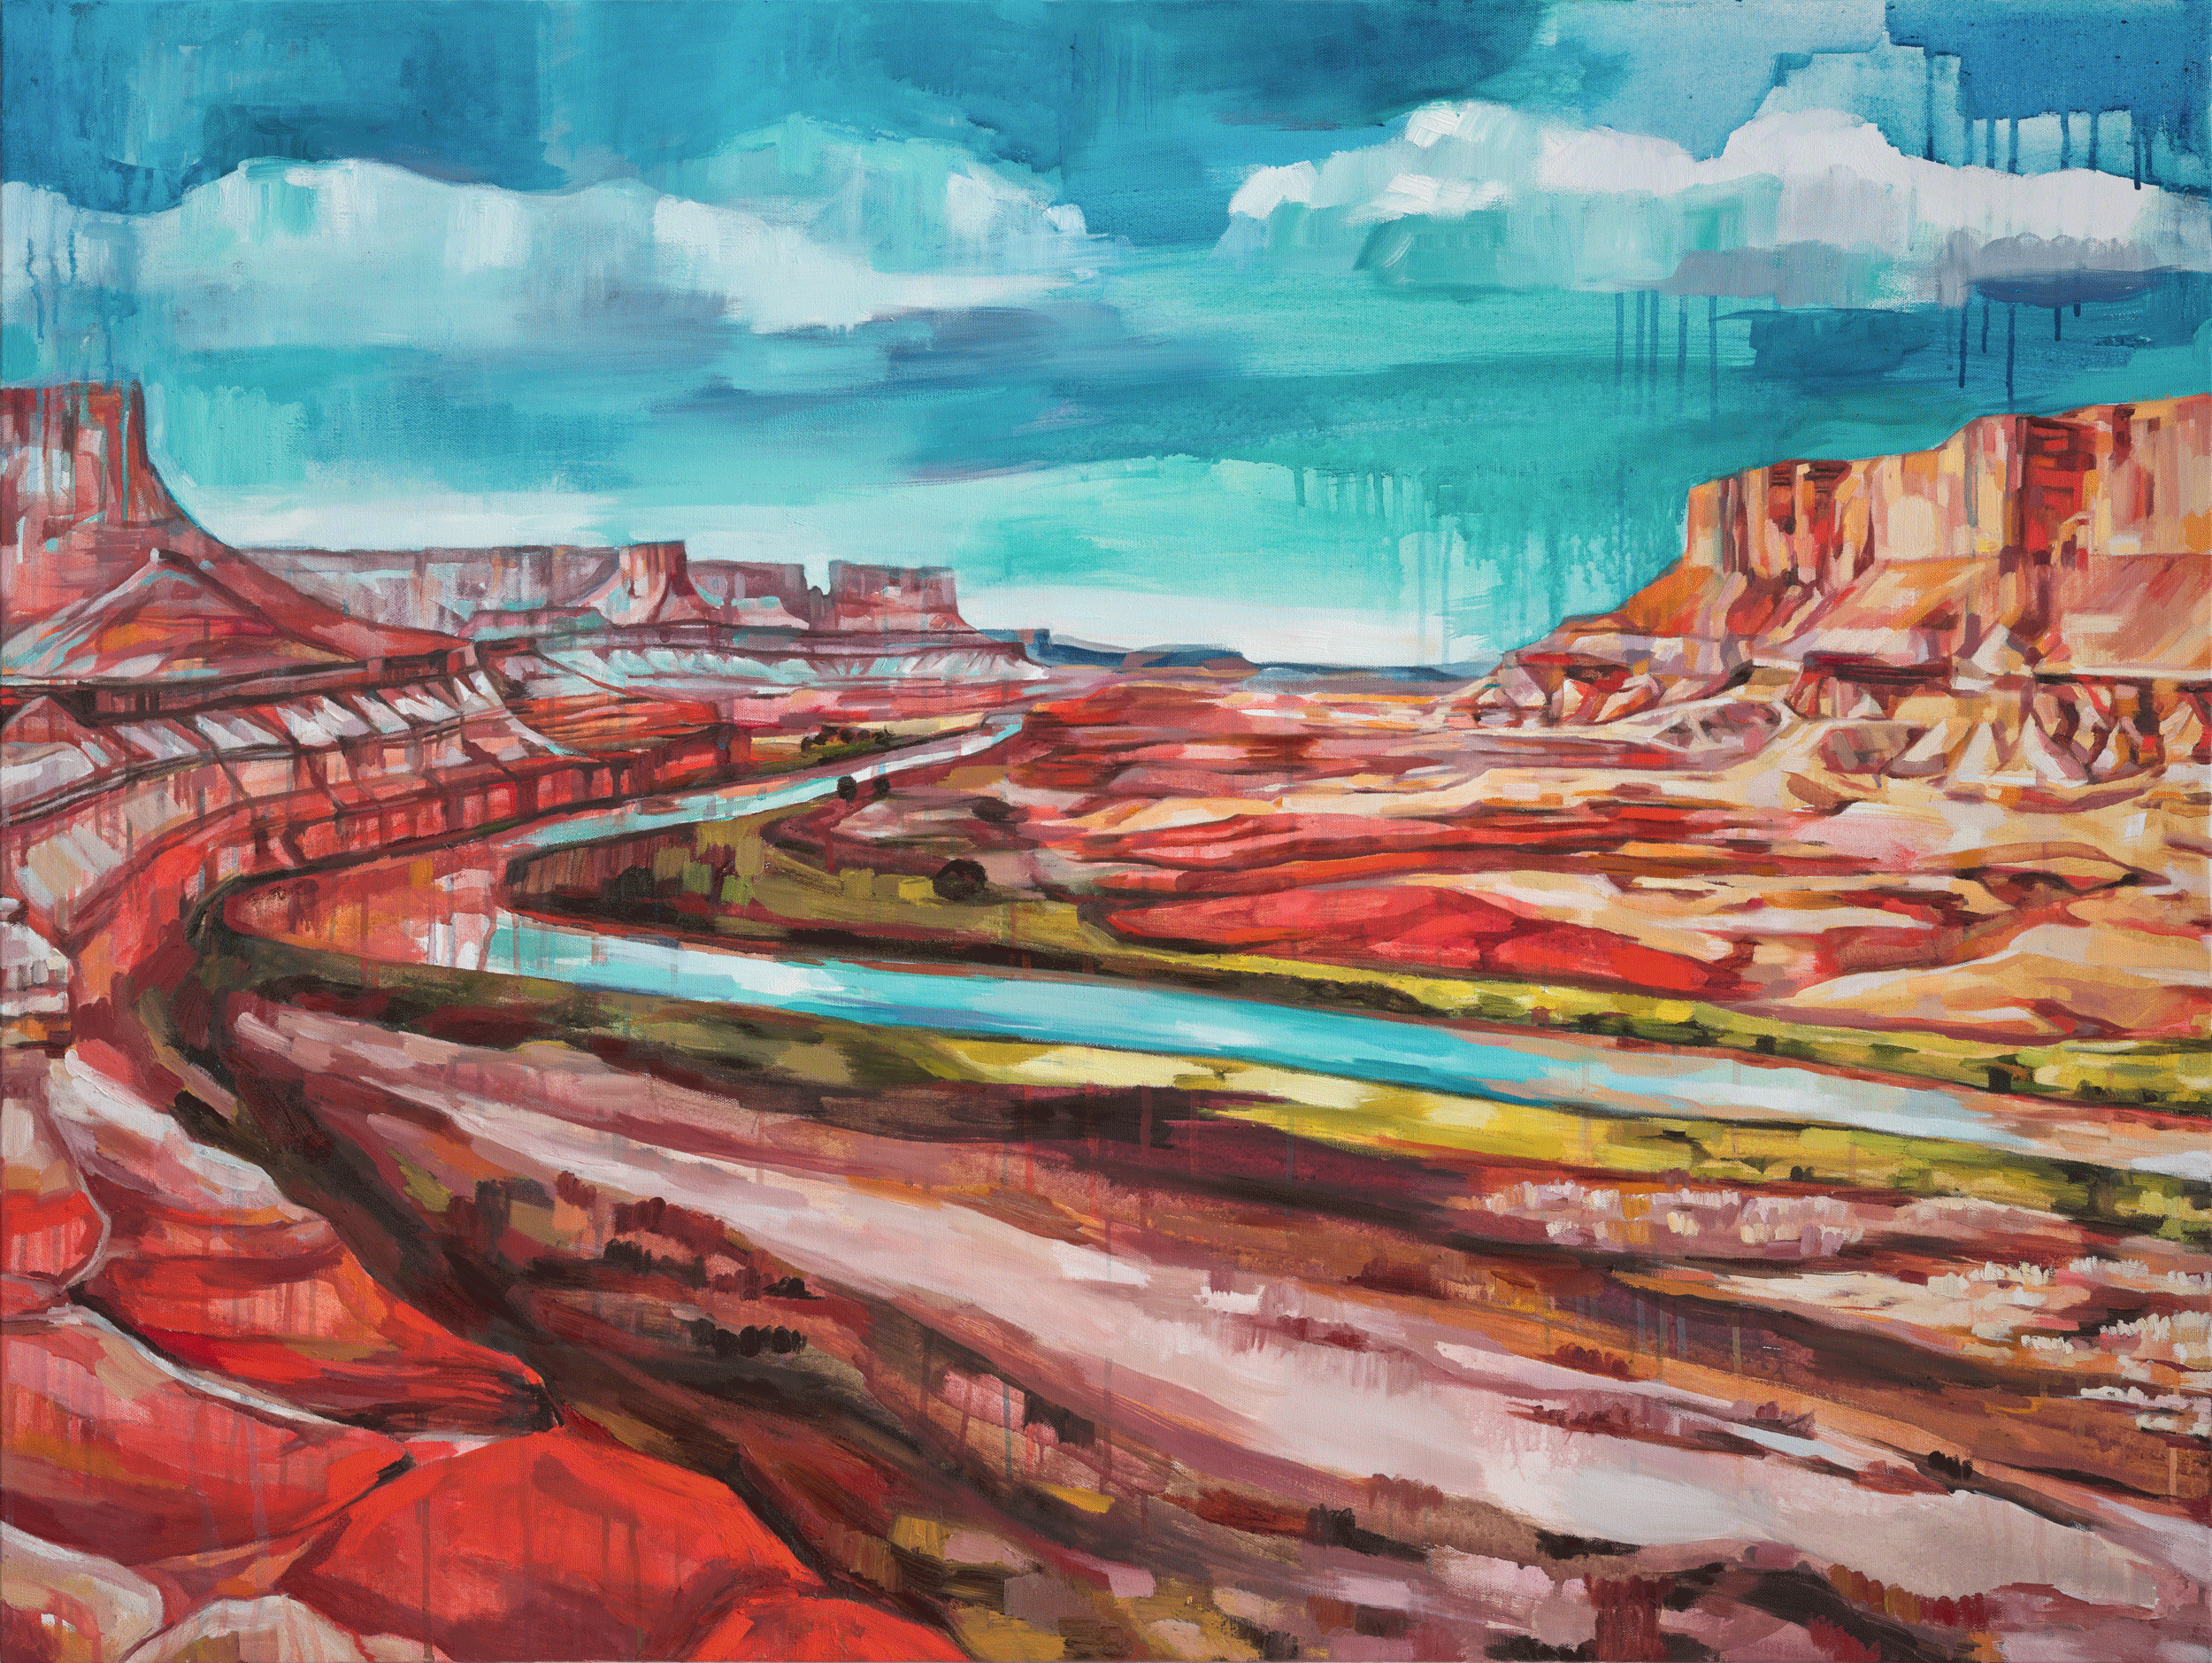 CANYONLANDS, oil on canvas, 36 x 48 inches -10% of print sales to the Conservation Alliance.